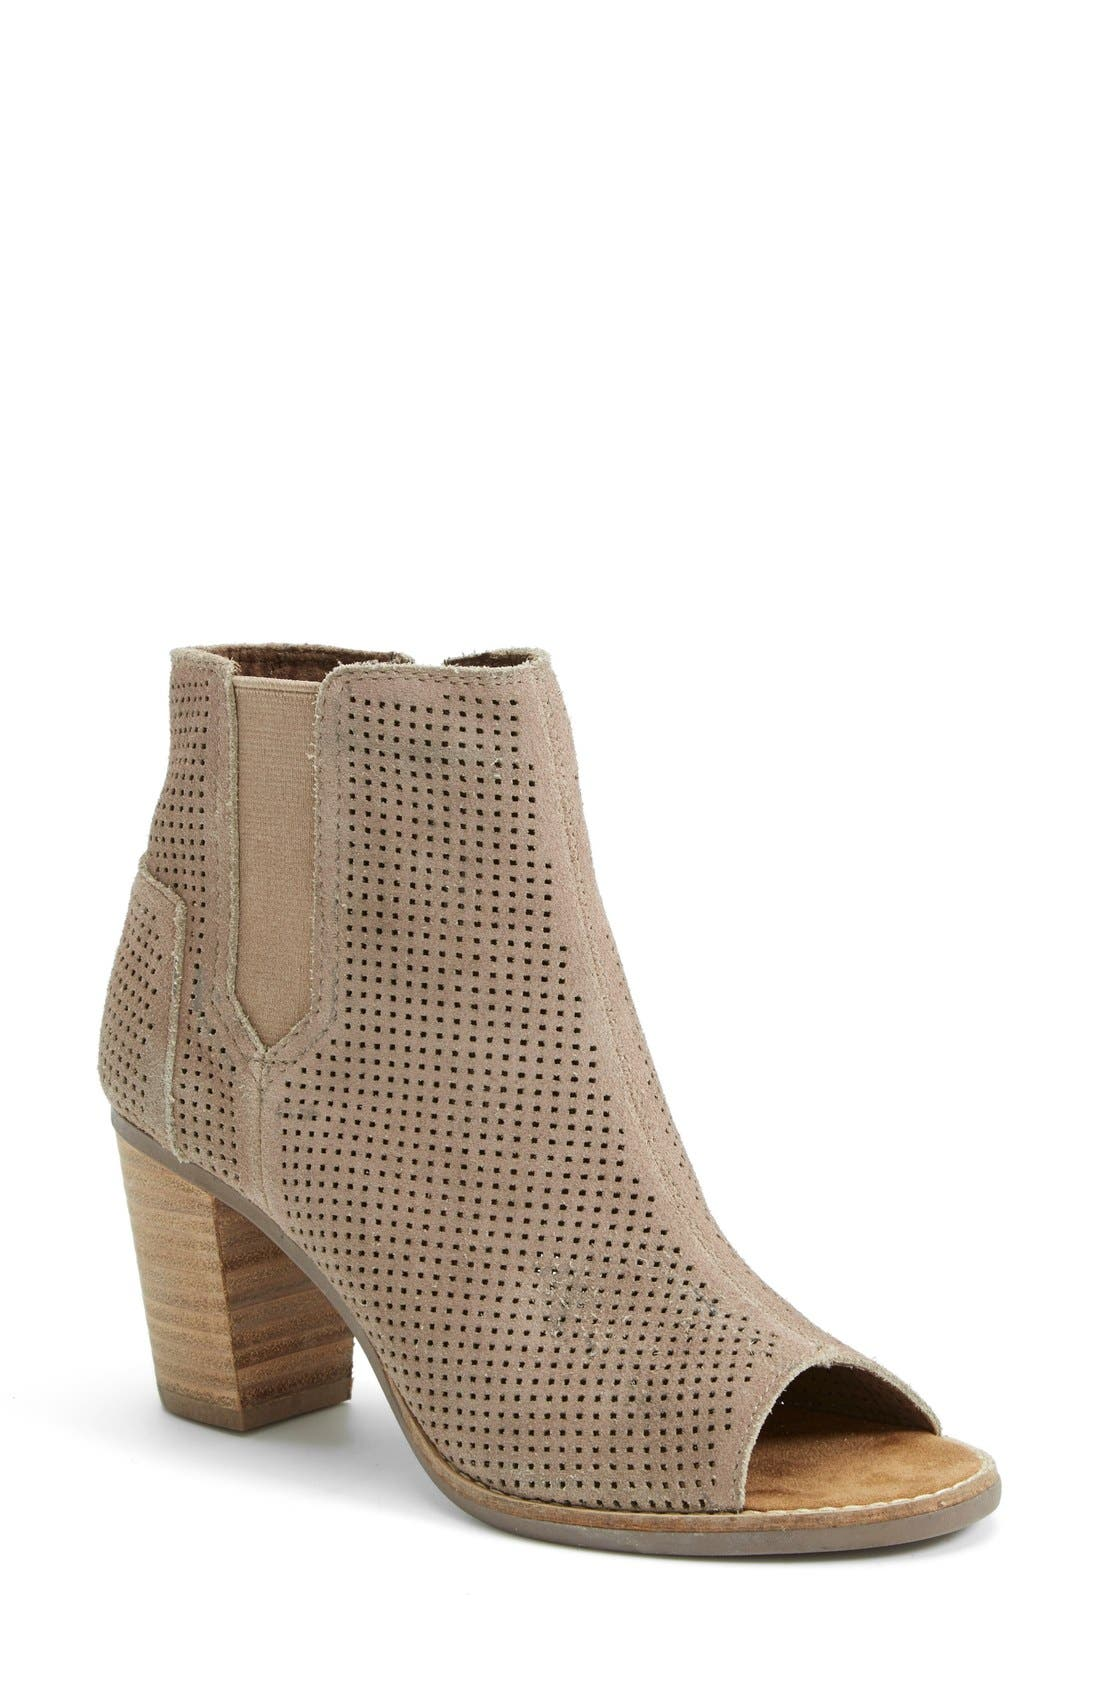 Alternate Image 1 Selected - TOMS 'Majorca' Suede Bootie (Women)